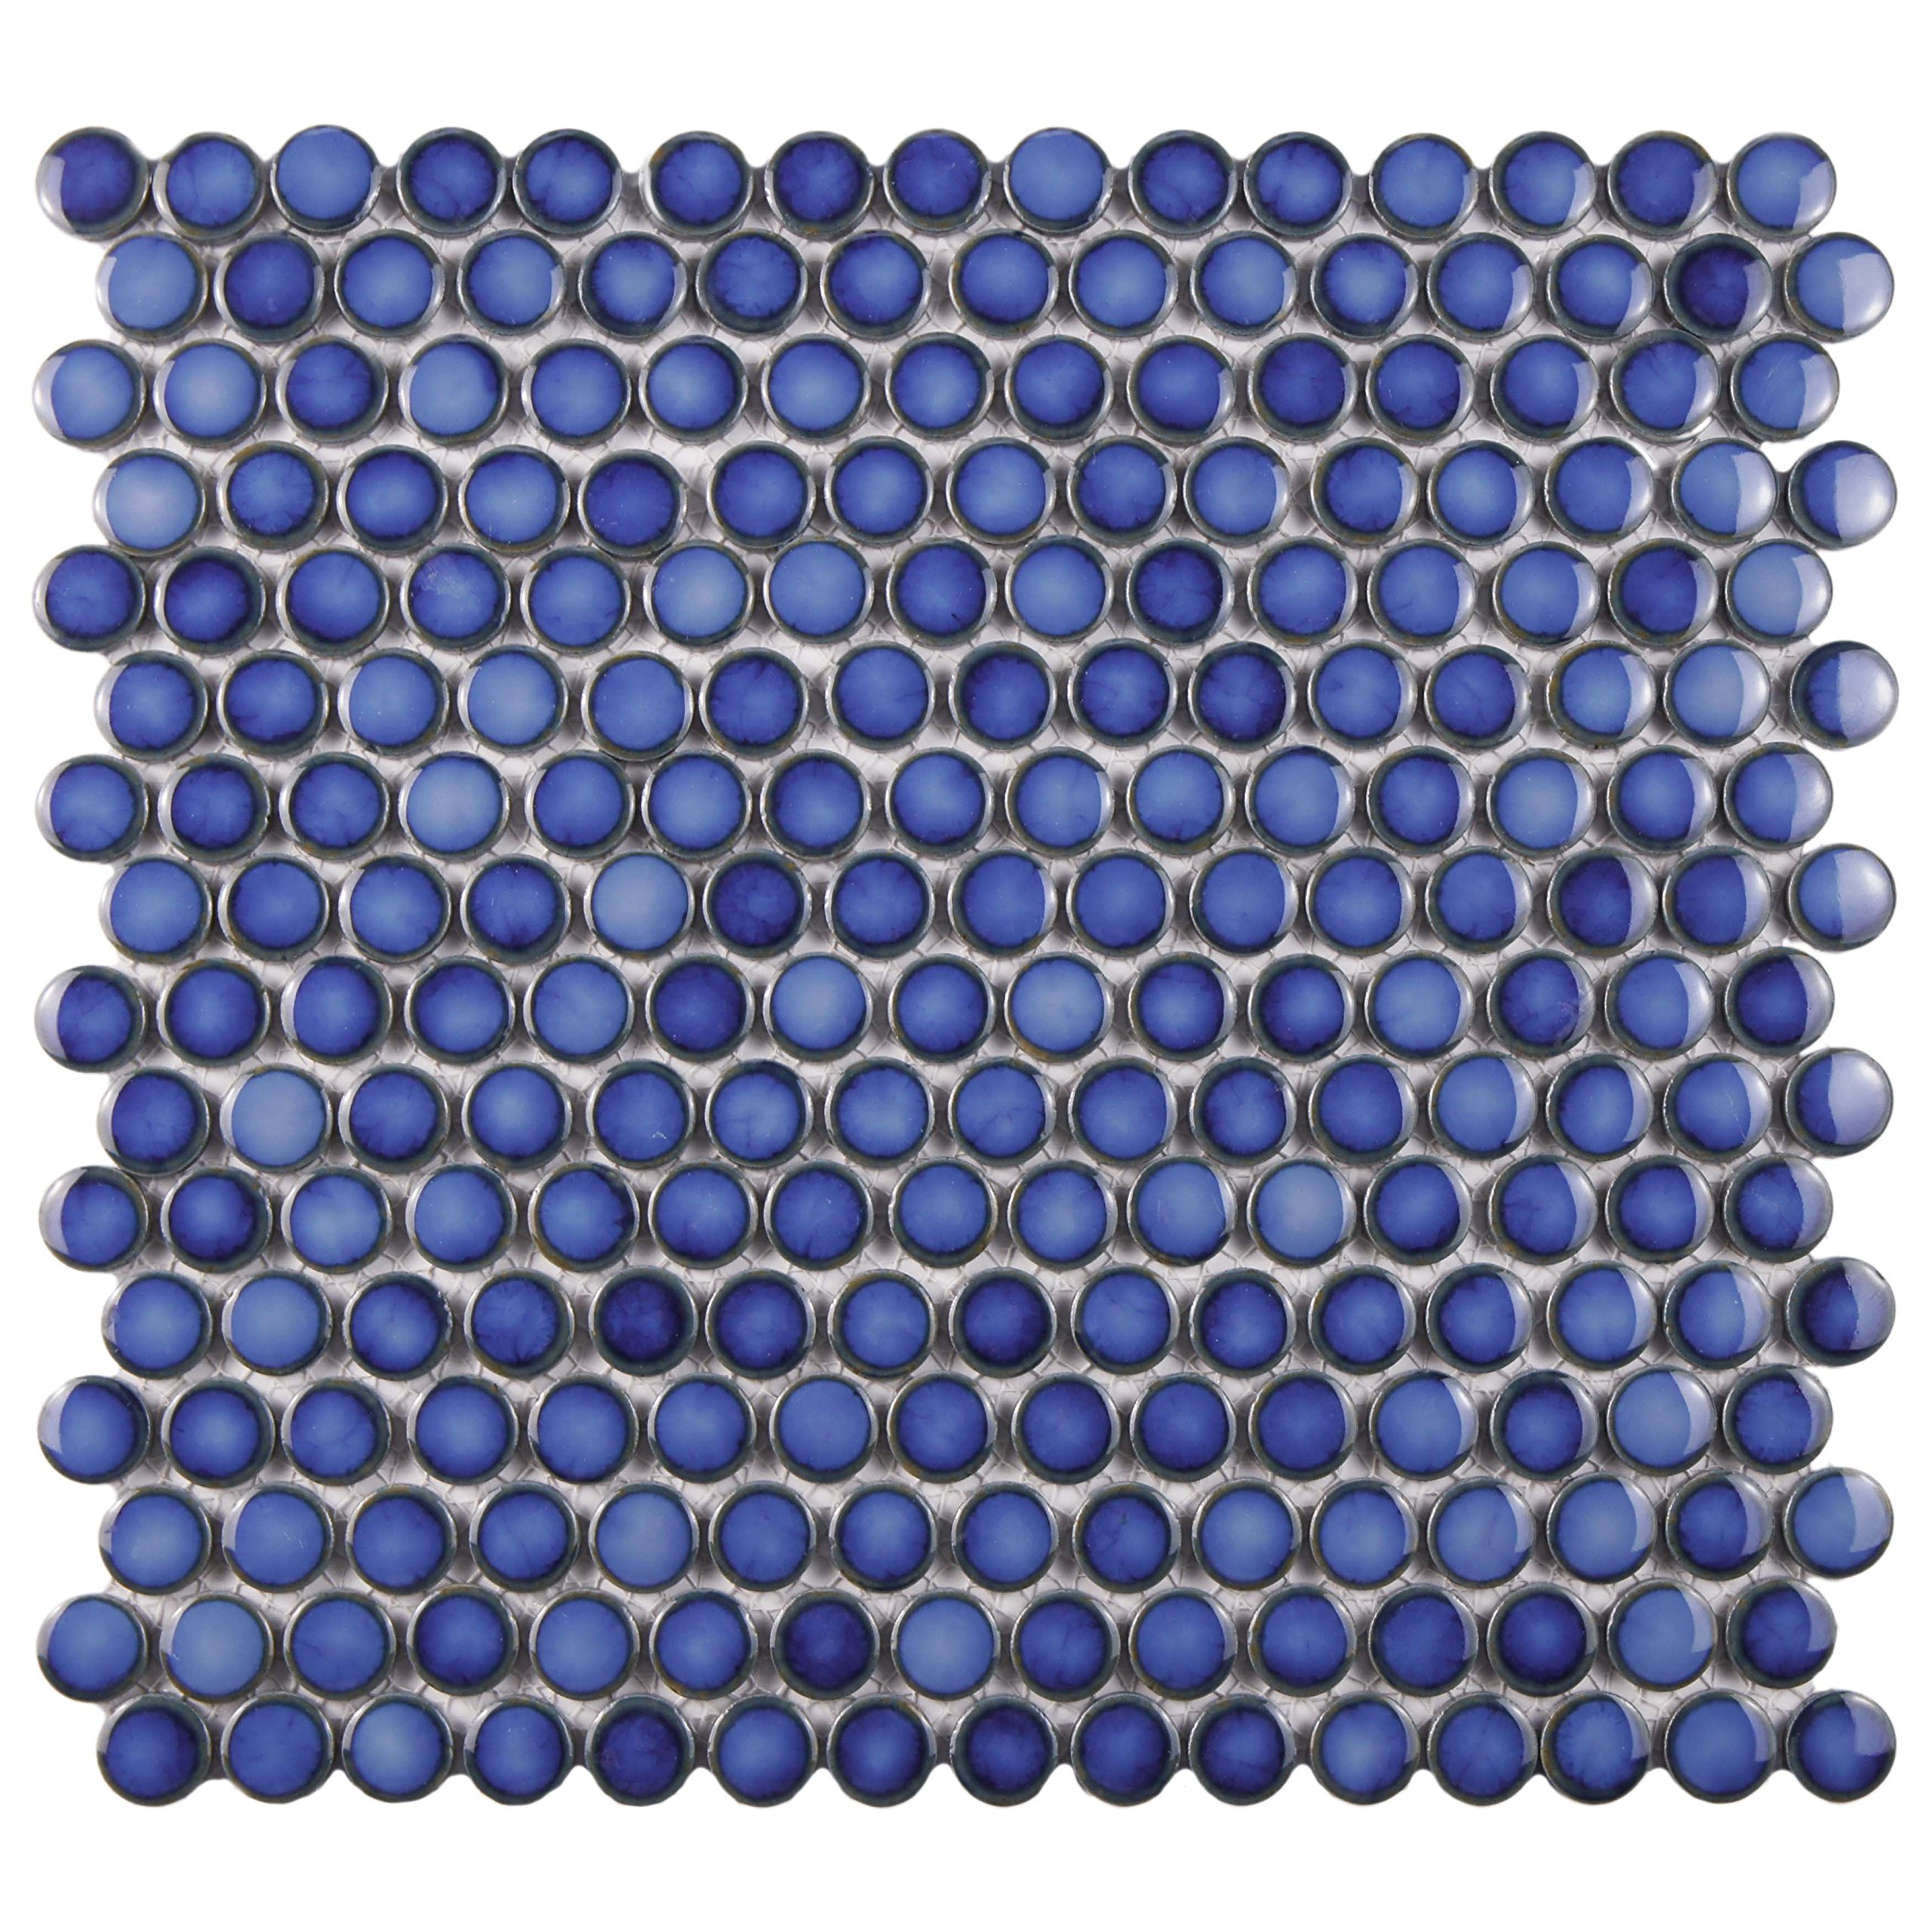 SomerTile FKOMPR44 Penny Porcelain Floor and Wall Tile, 12'' x 12.625'', Glossy Sapphire Blue